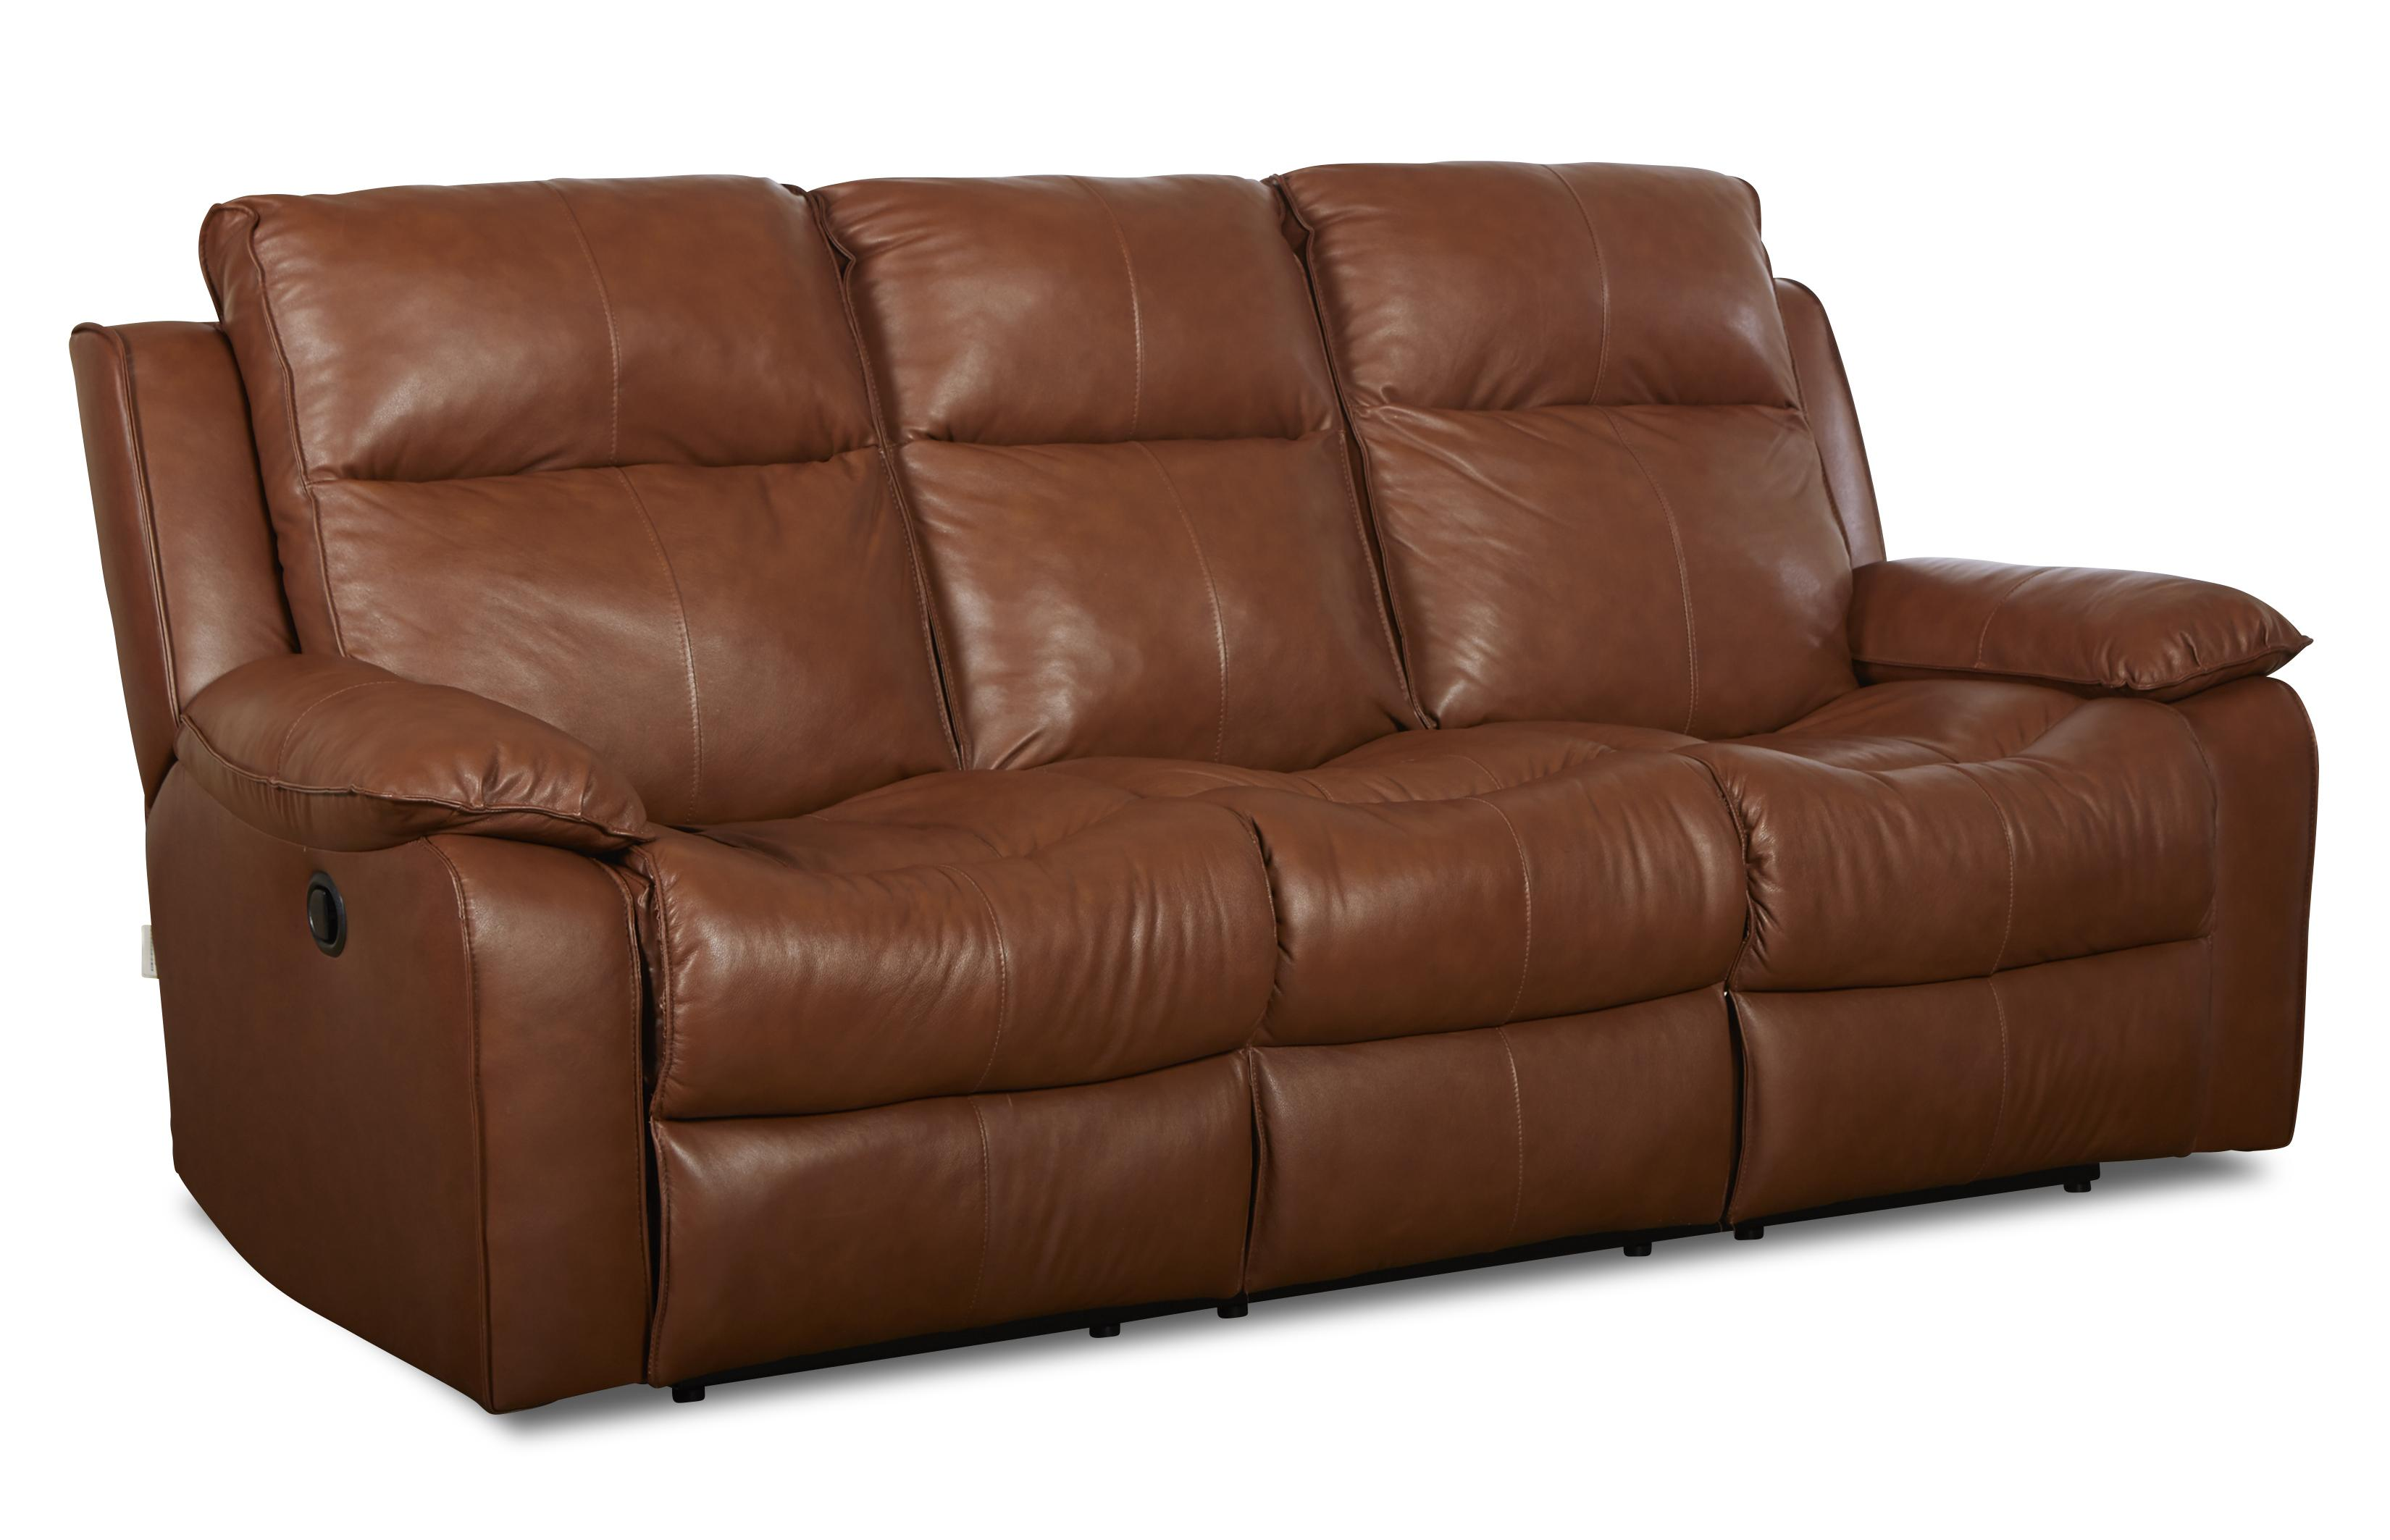 Casual Power Reclining Sofa With Bucket Seats By Klaussner Wolf And Gardiner Wolf Furniture